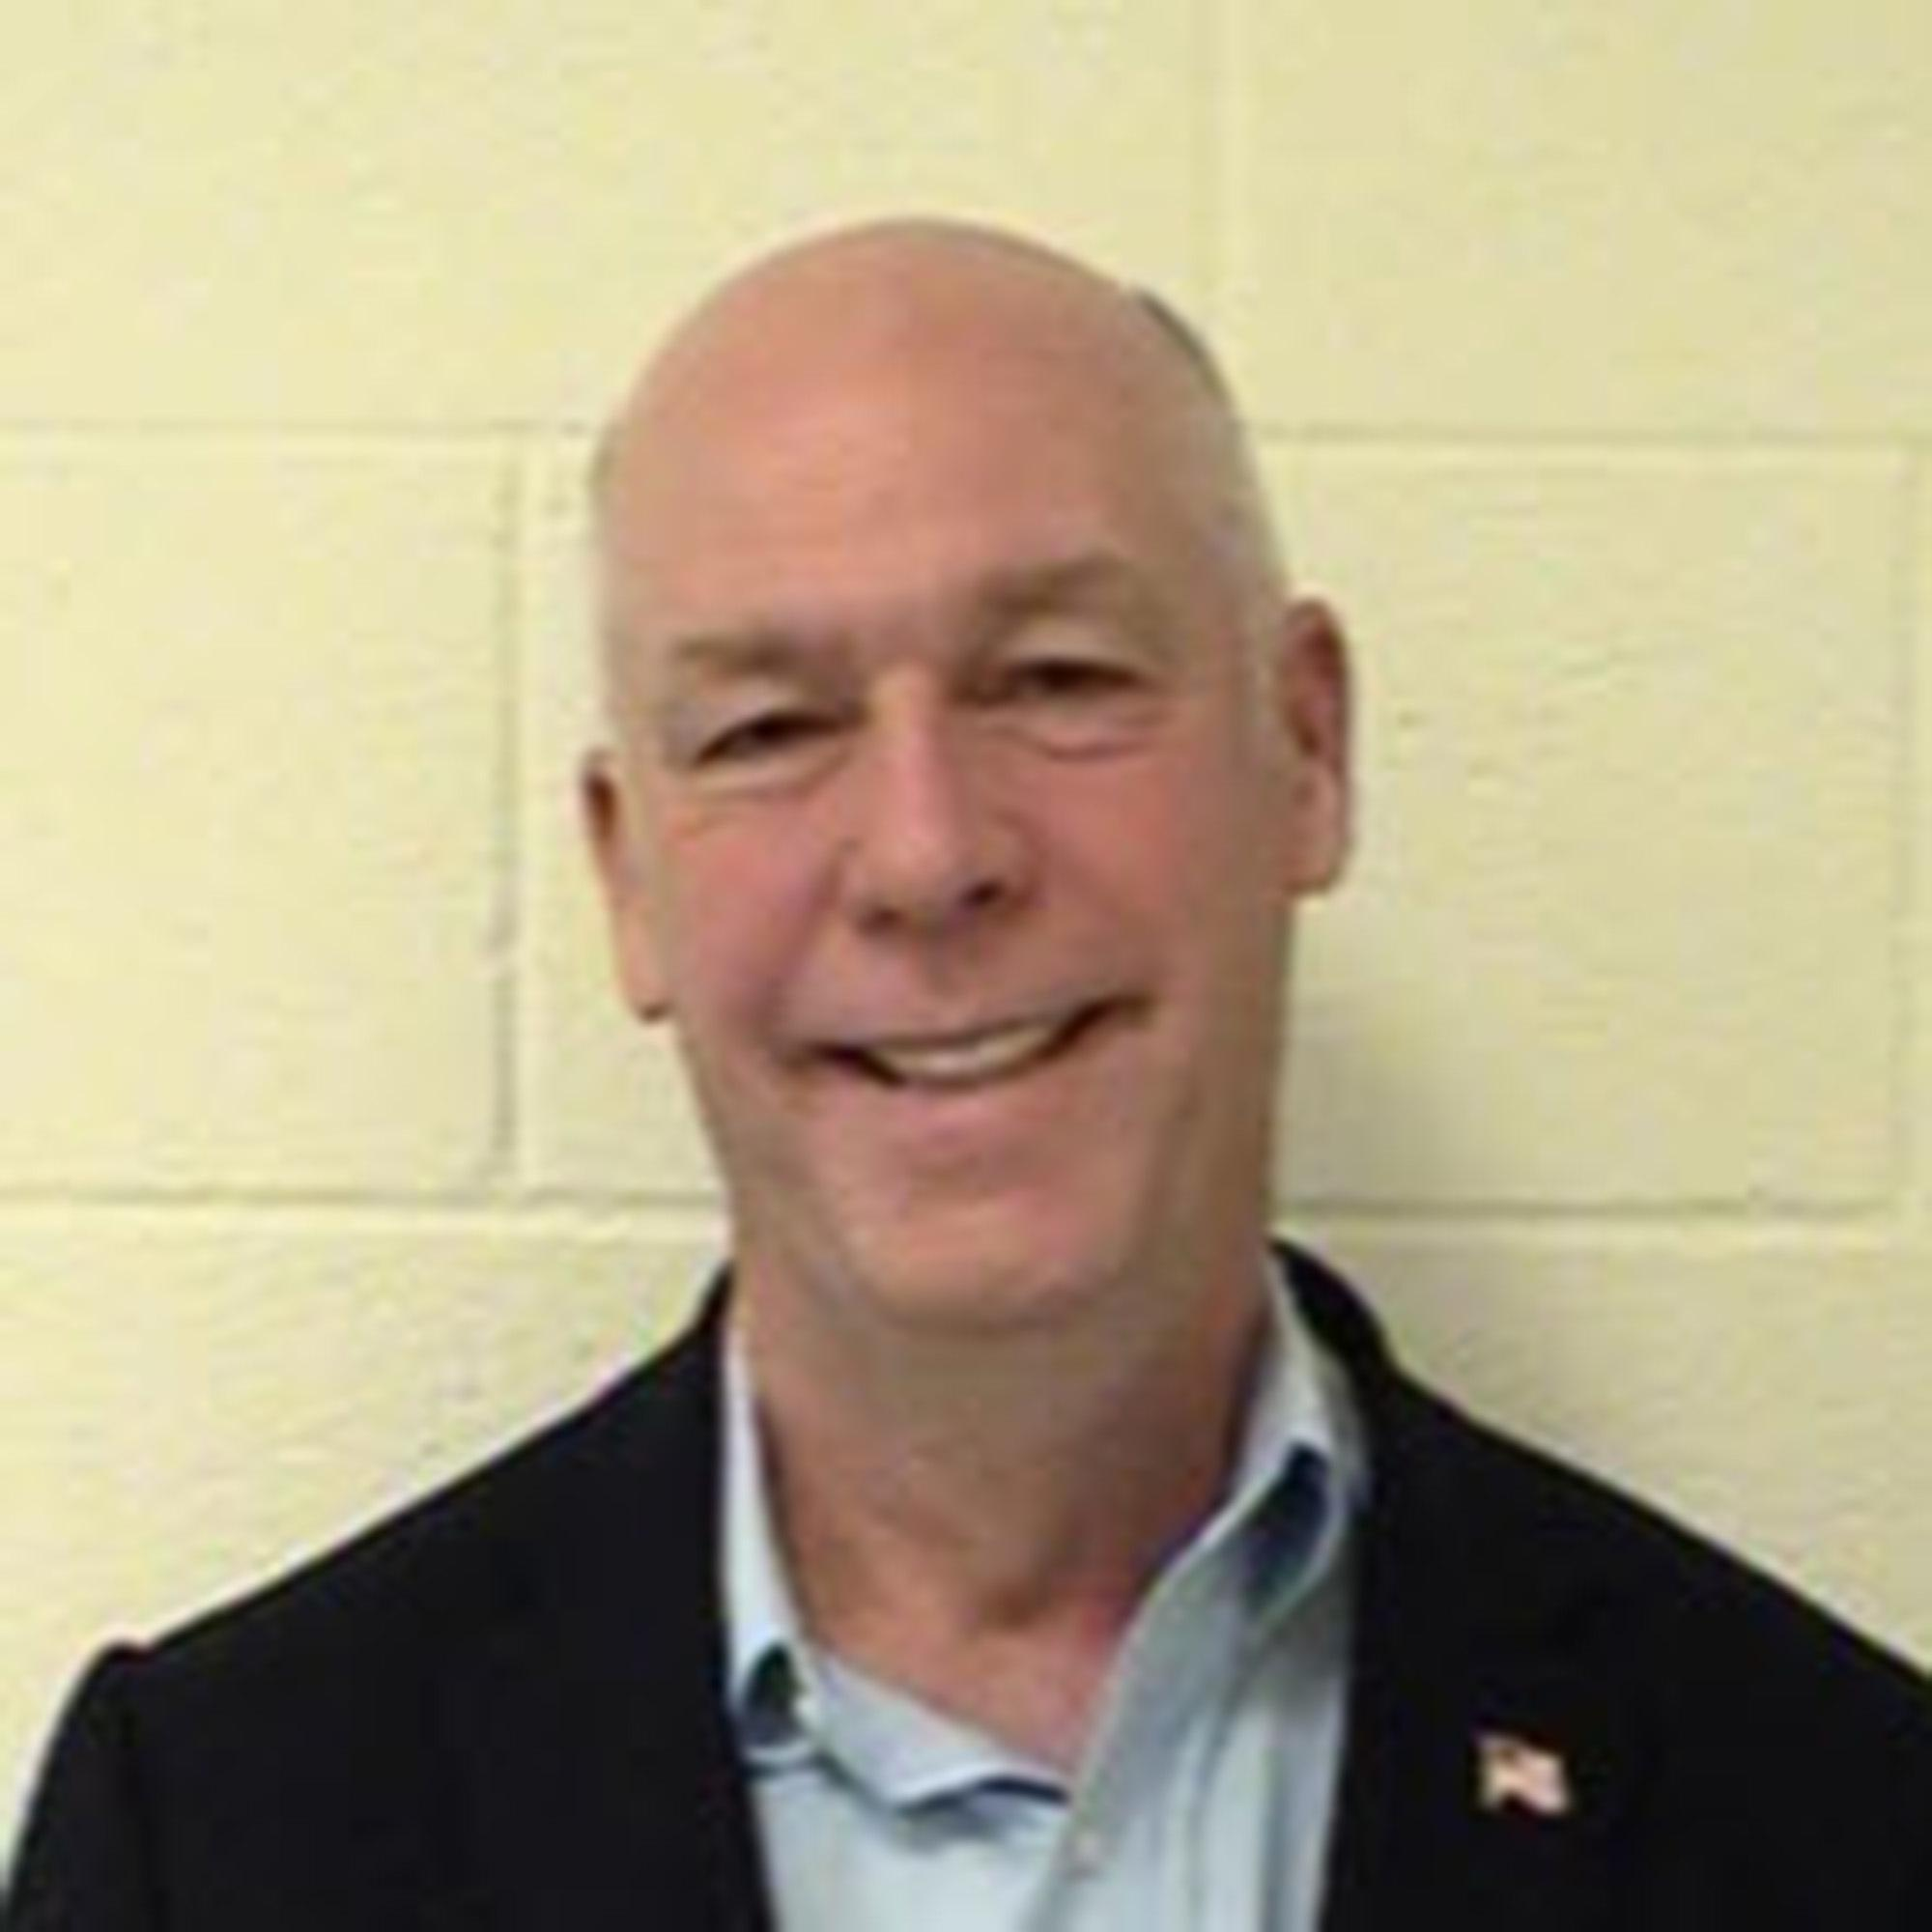 Court Releases Congressman Gianforte's Mug Shot